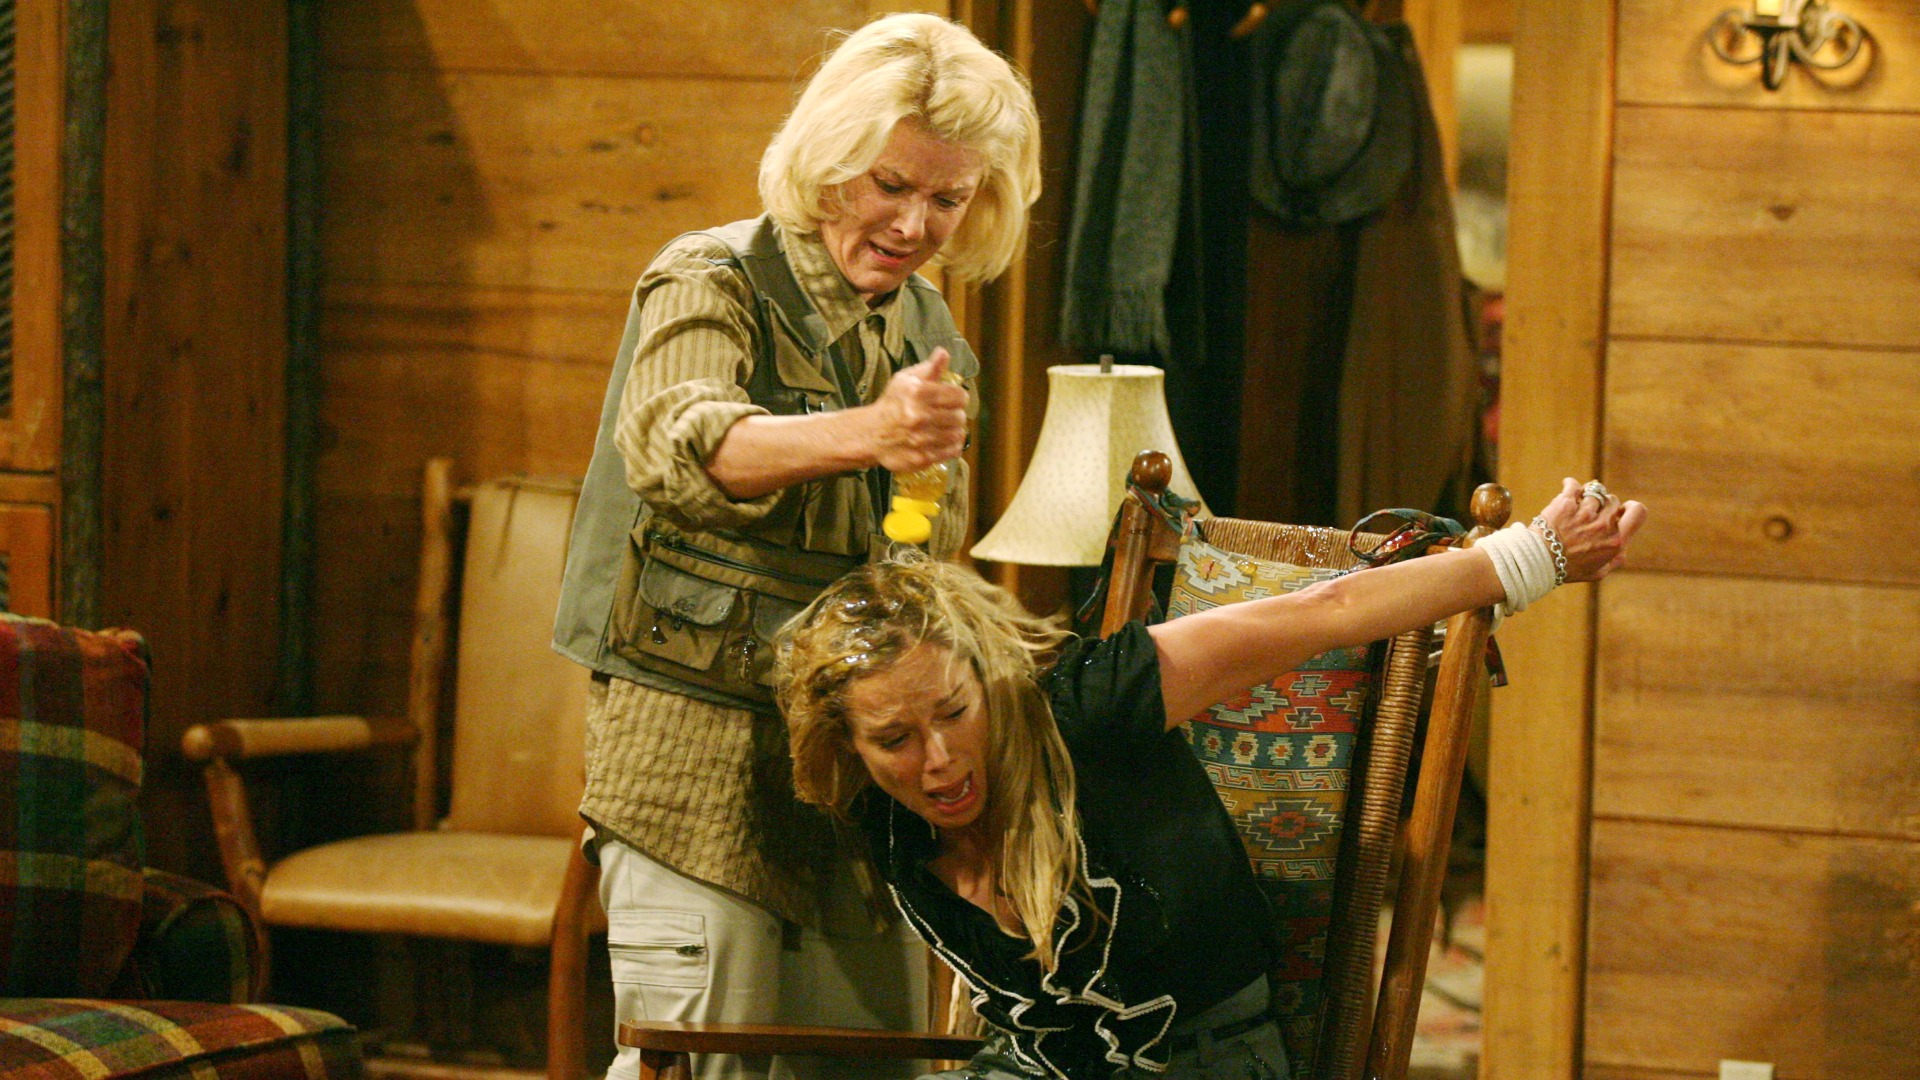 Pam tied Donna to a chair and poured honey on her in hopes a bear would attack.